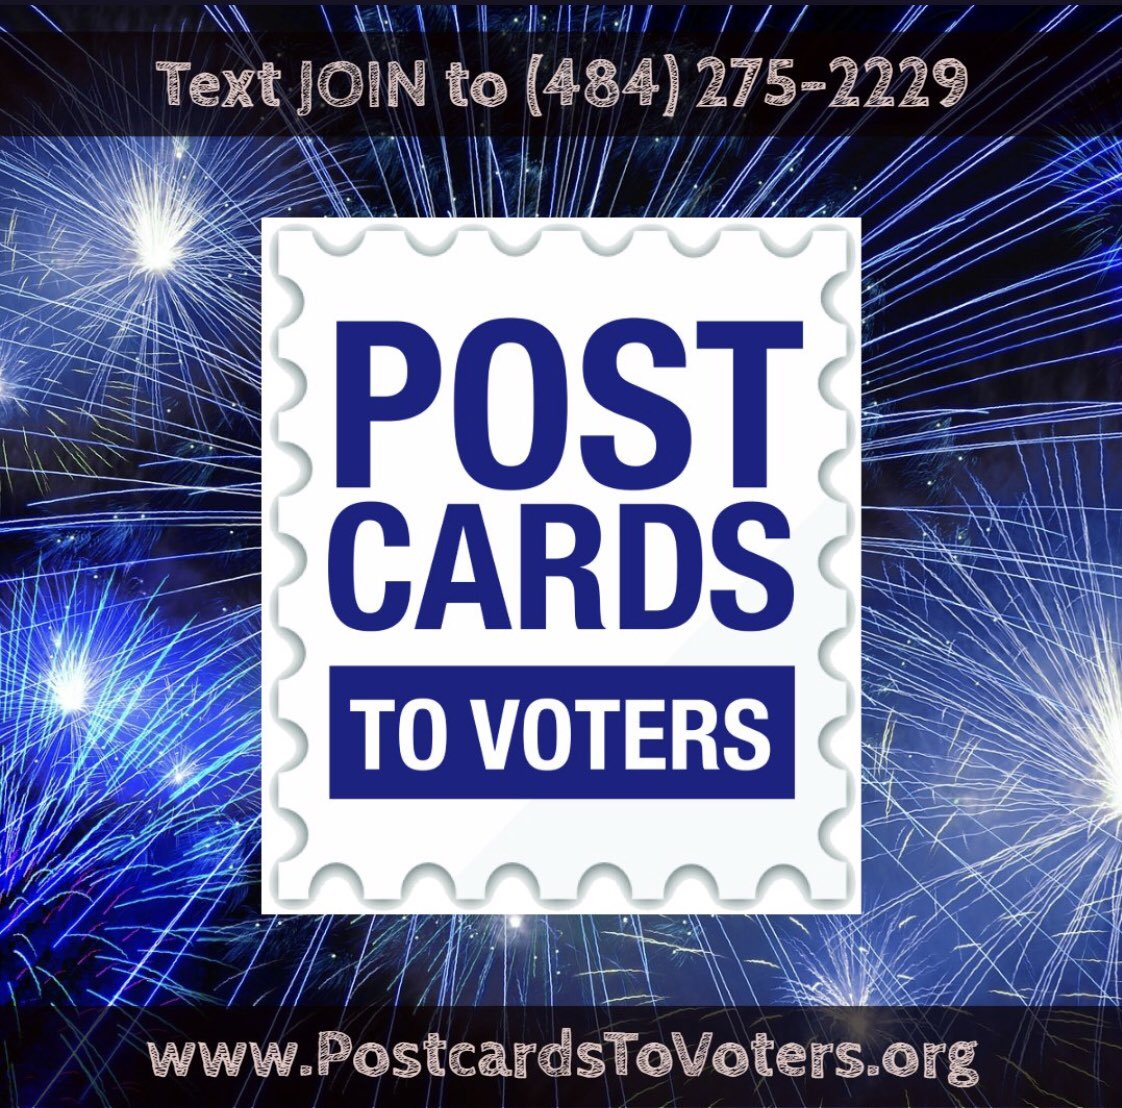 Are you looking for a way to help strengthen our democracy and fight the chaos? Write with us to boost turnout! #PostcardsToVoters #VoteBlue #BeAVoter <br>http://pic.twitter.com/XEDPrTGlm0